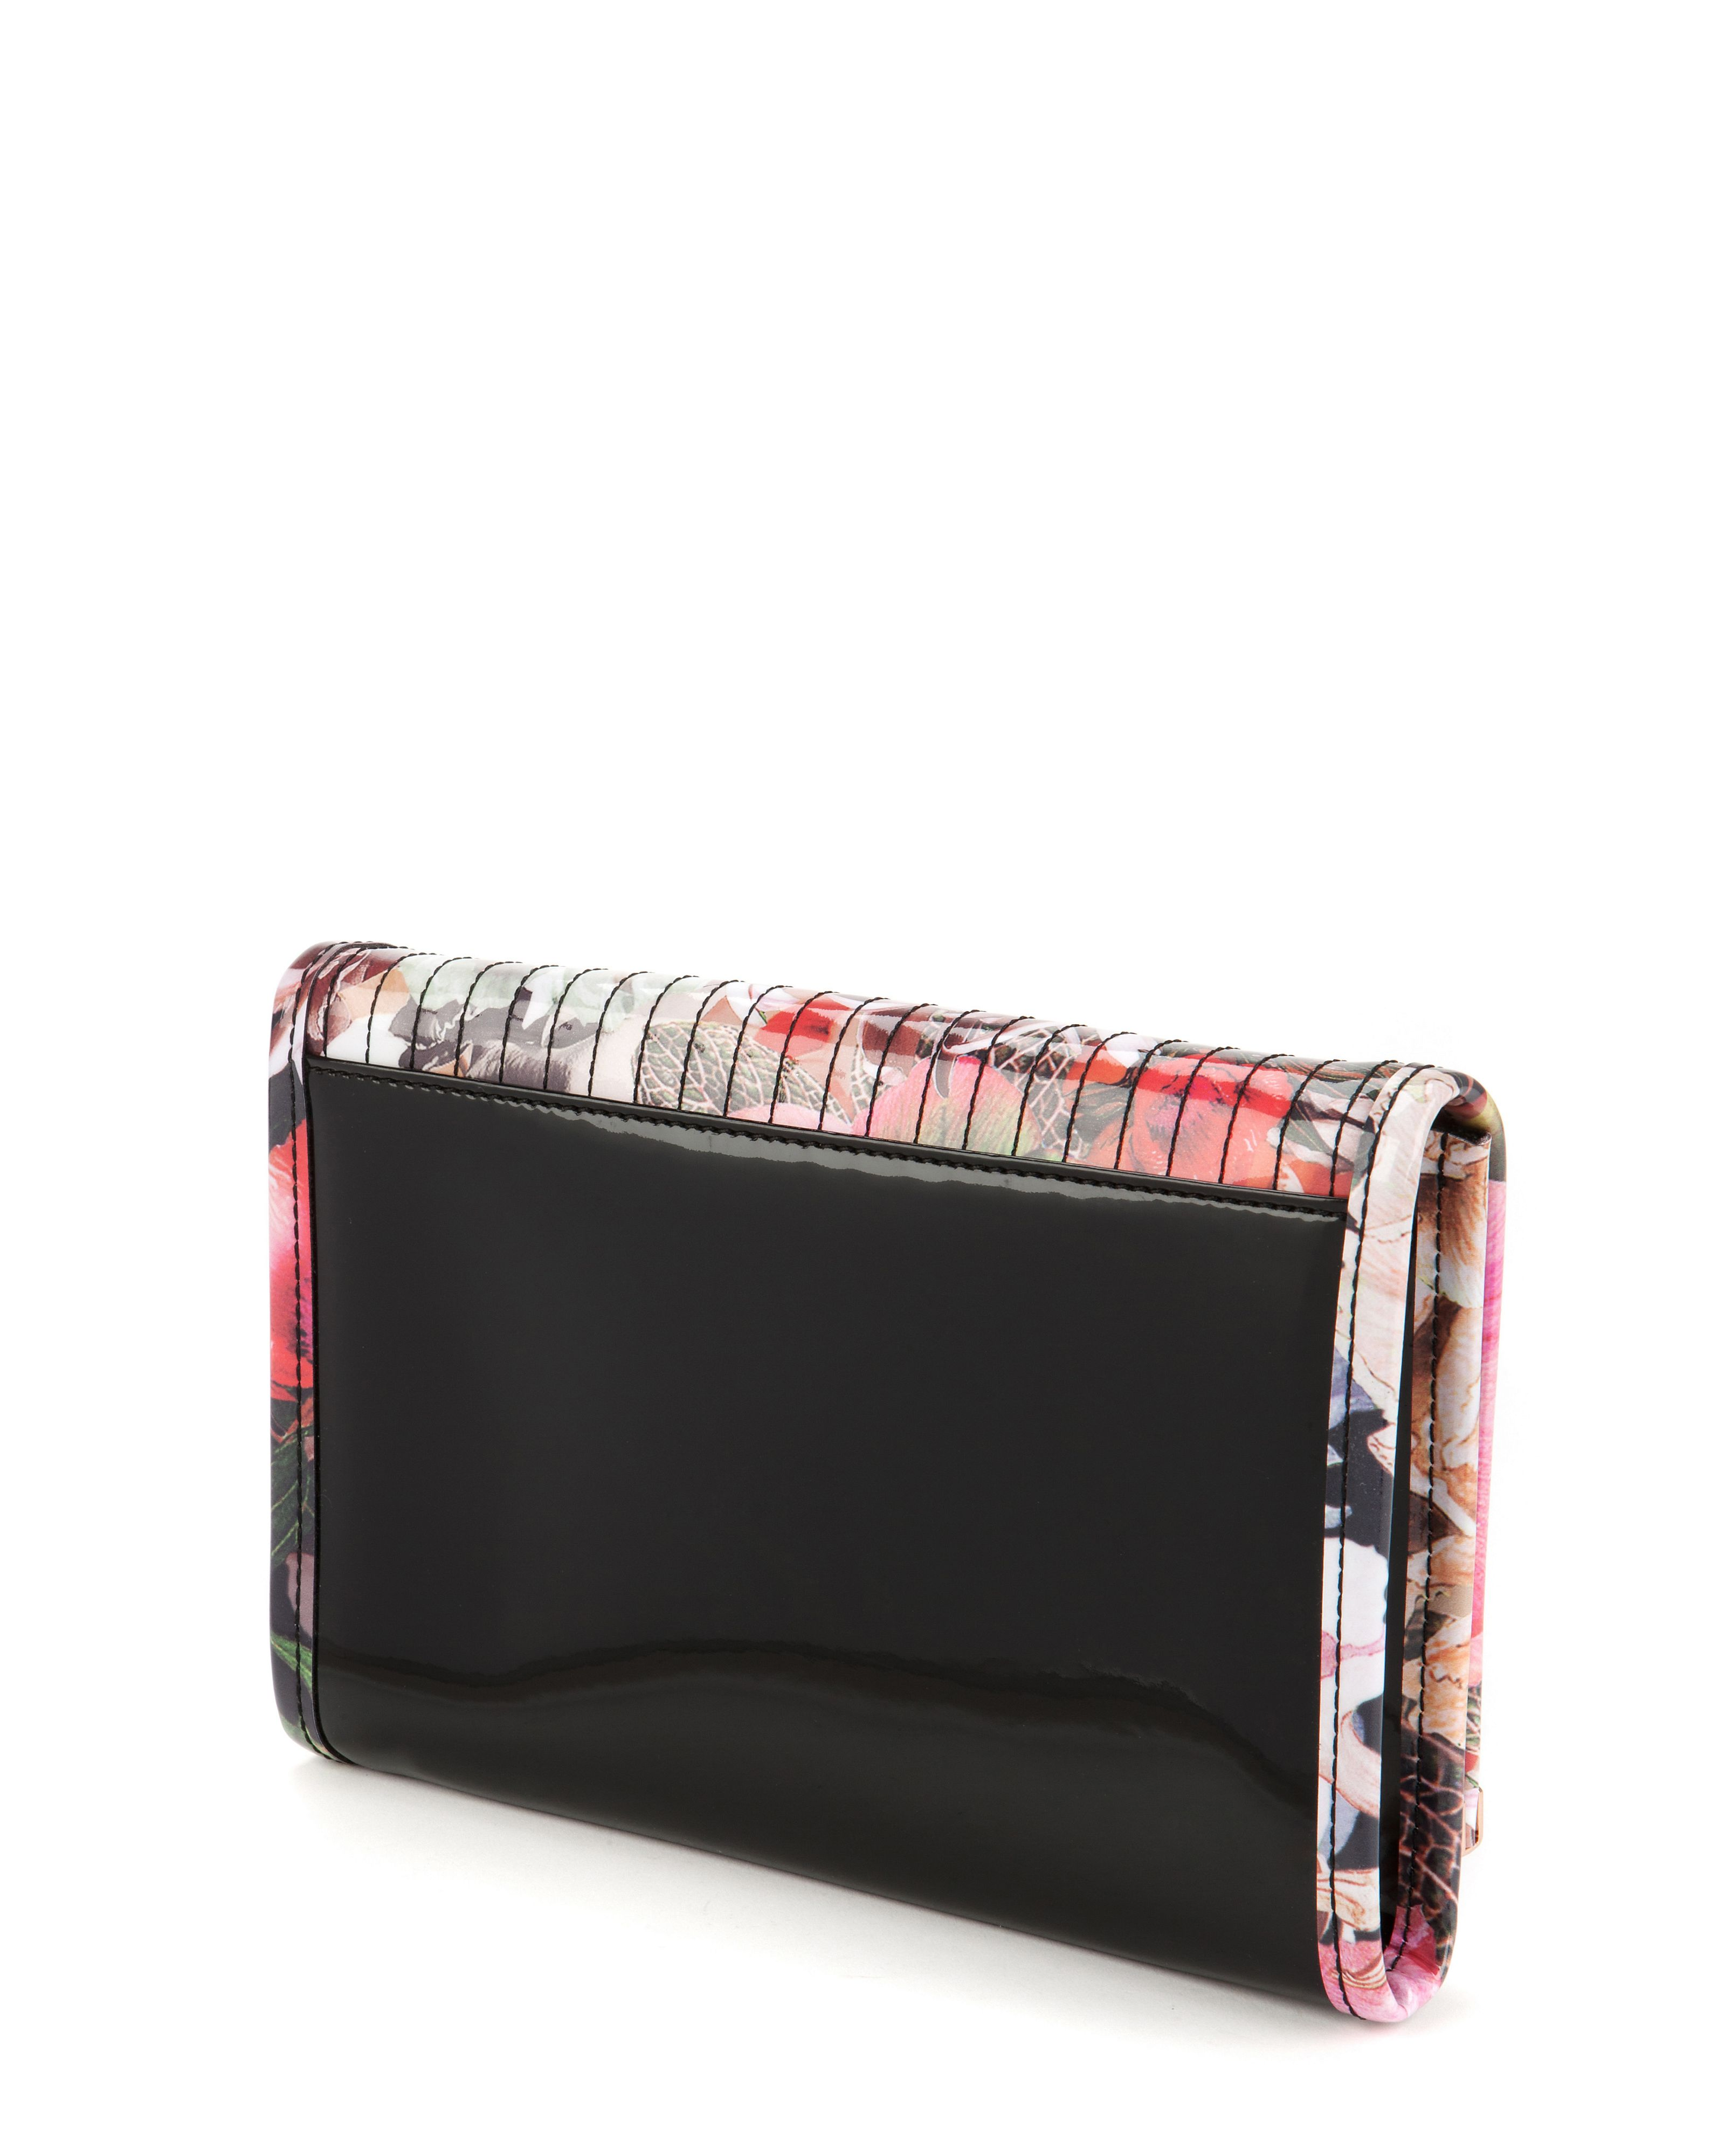 Jerro mini ipad case